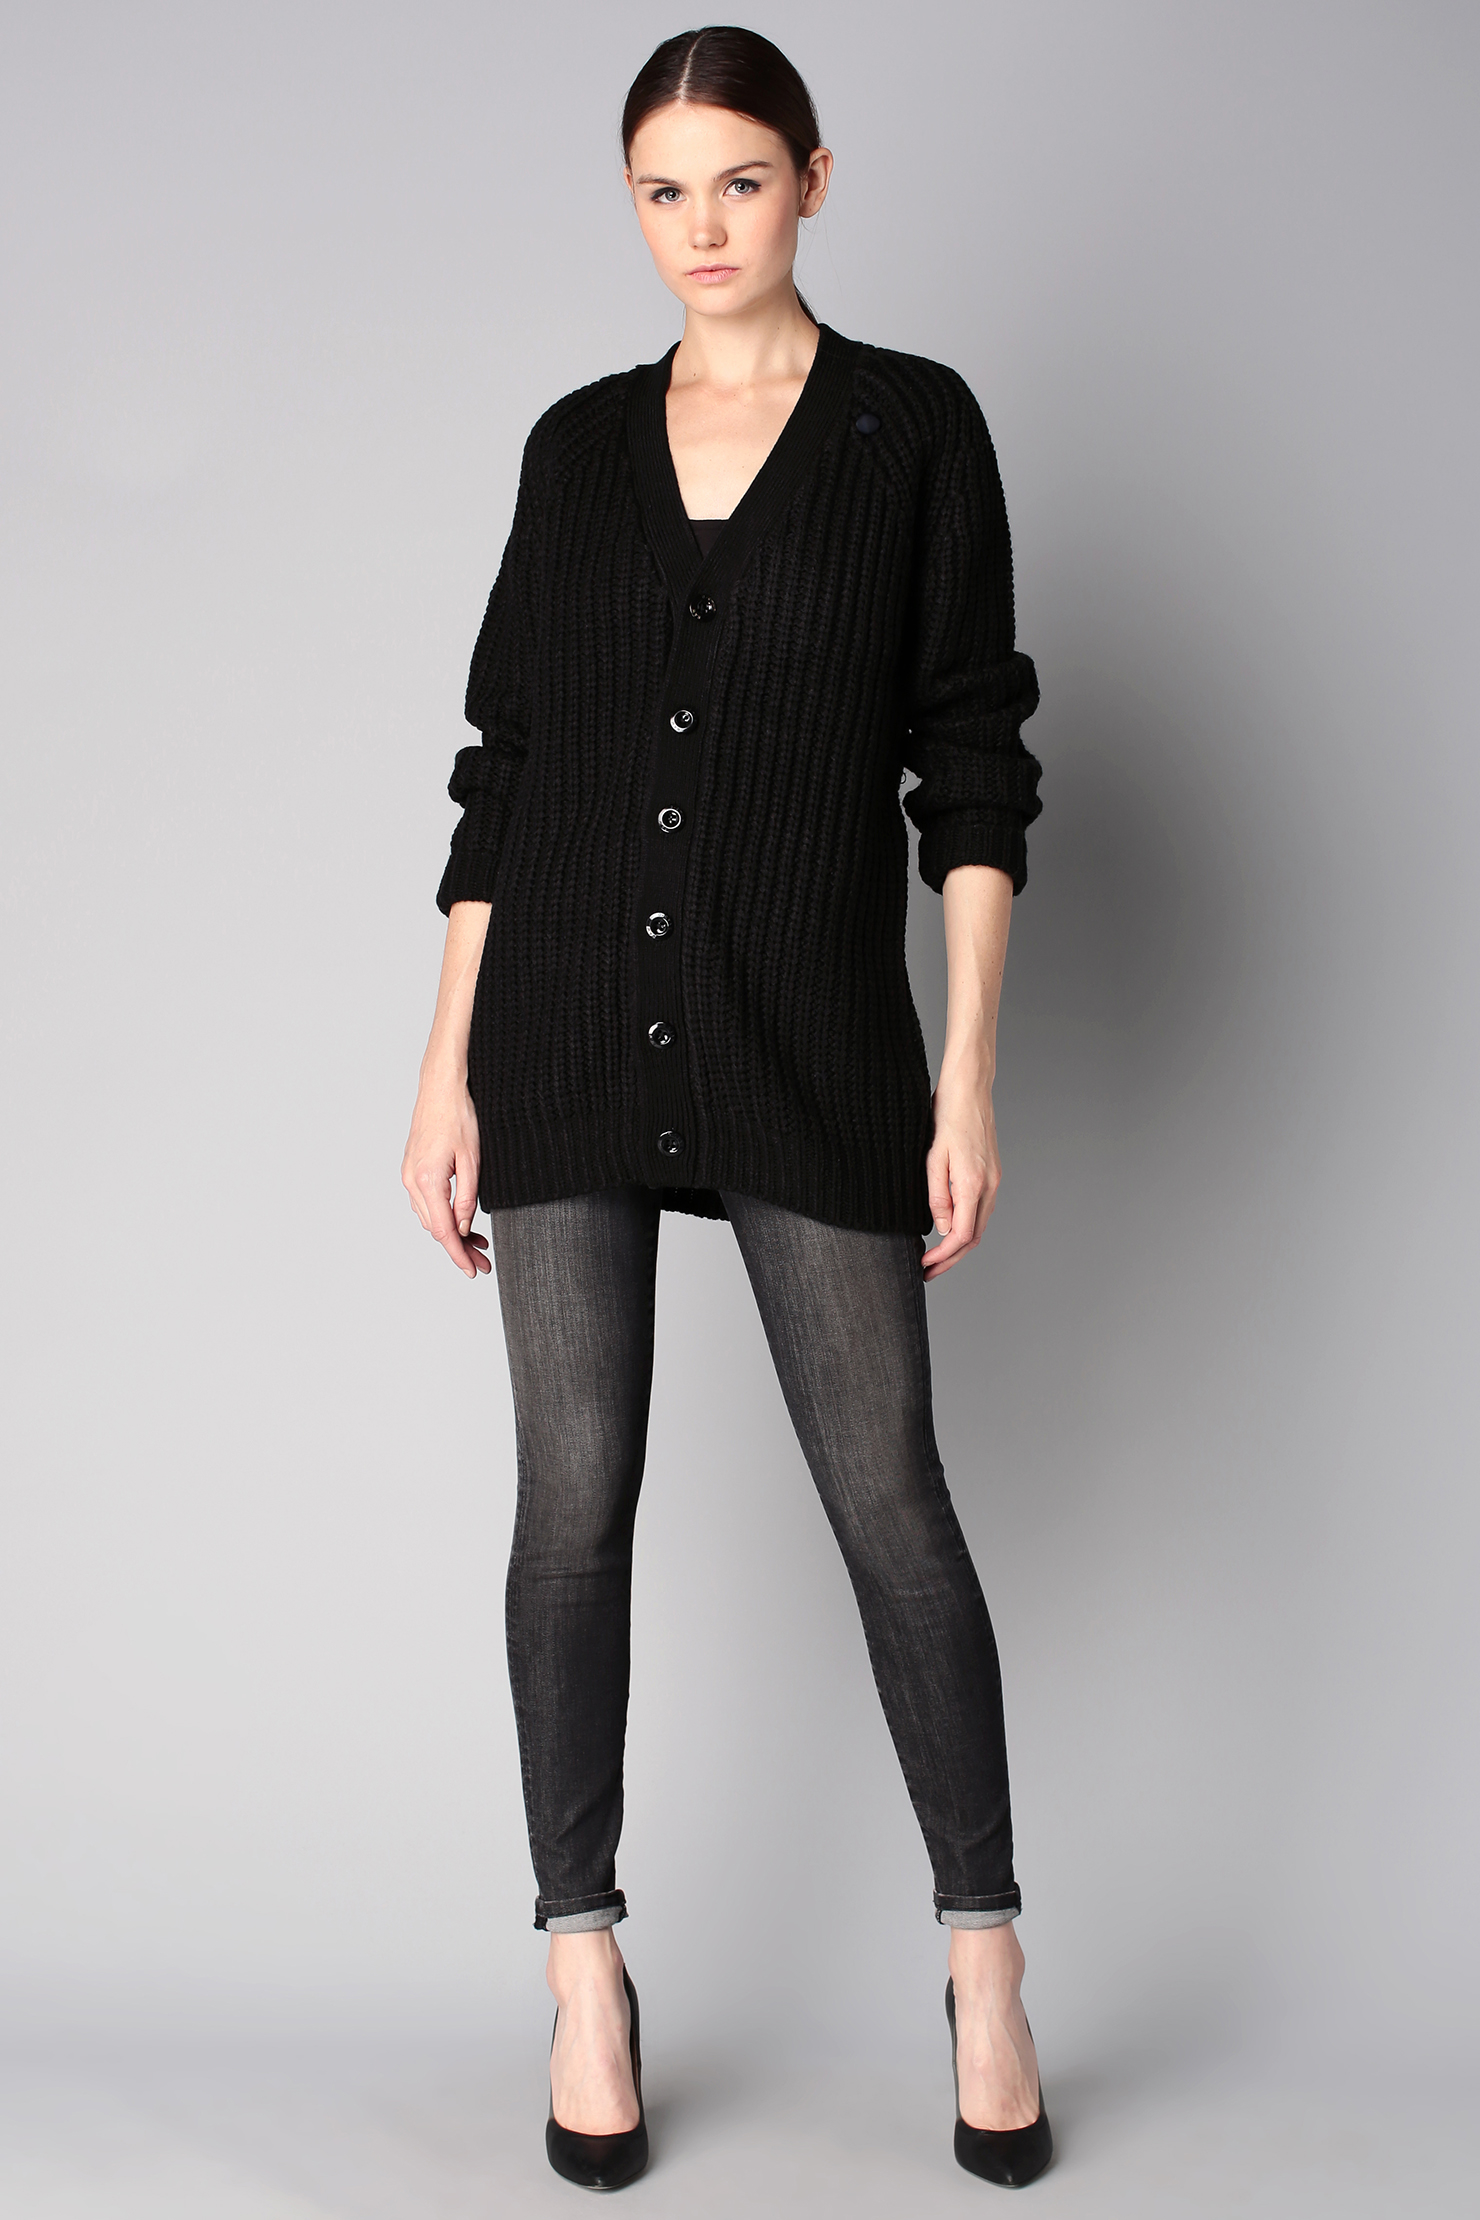 g star raw cardigan in black lyst. Black Bedroom Furniture Sets. Home Design Ideas